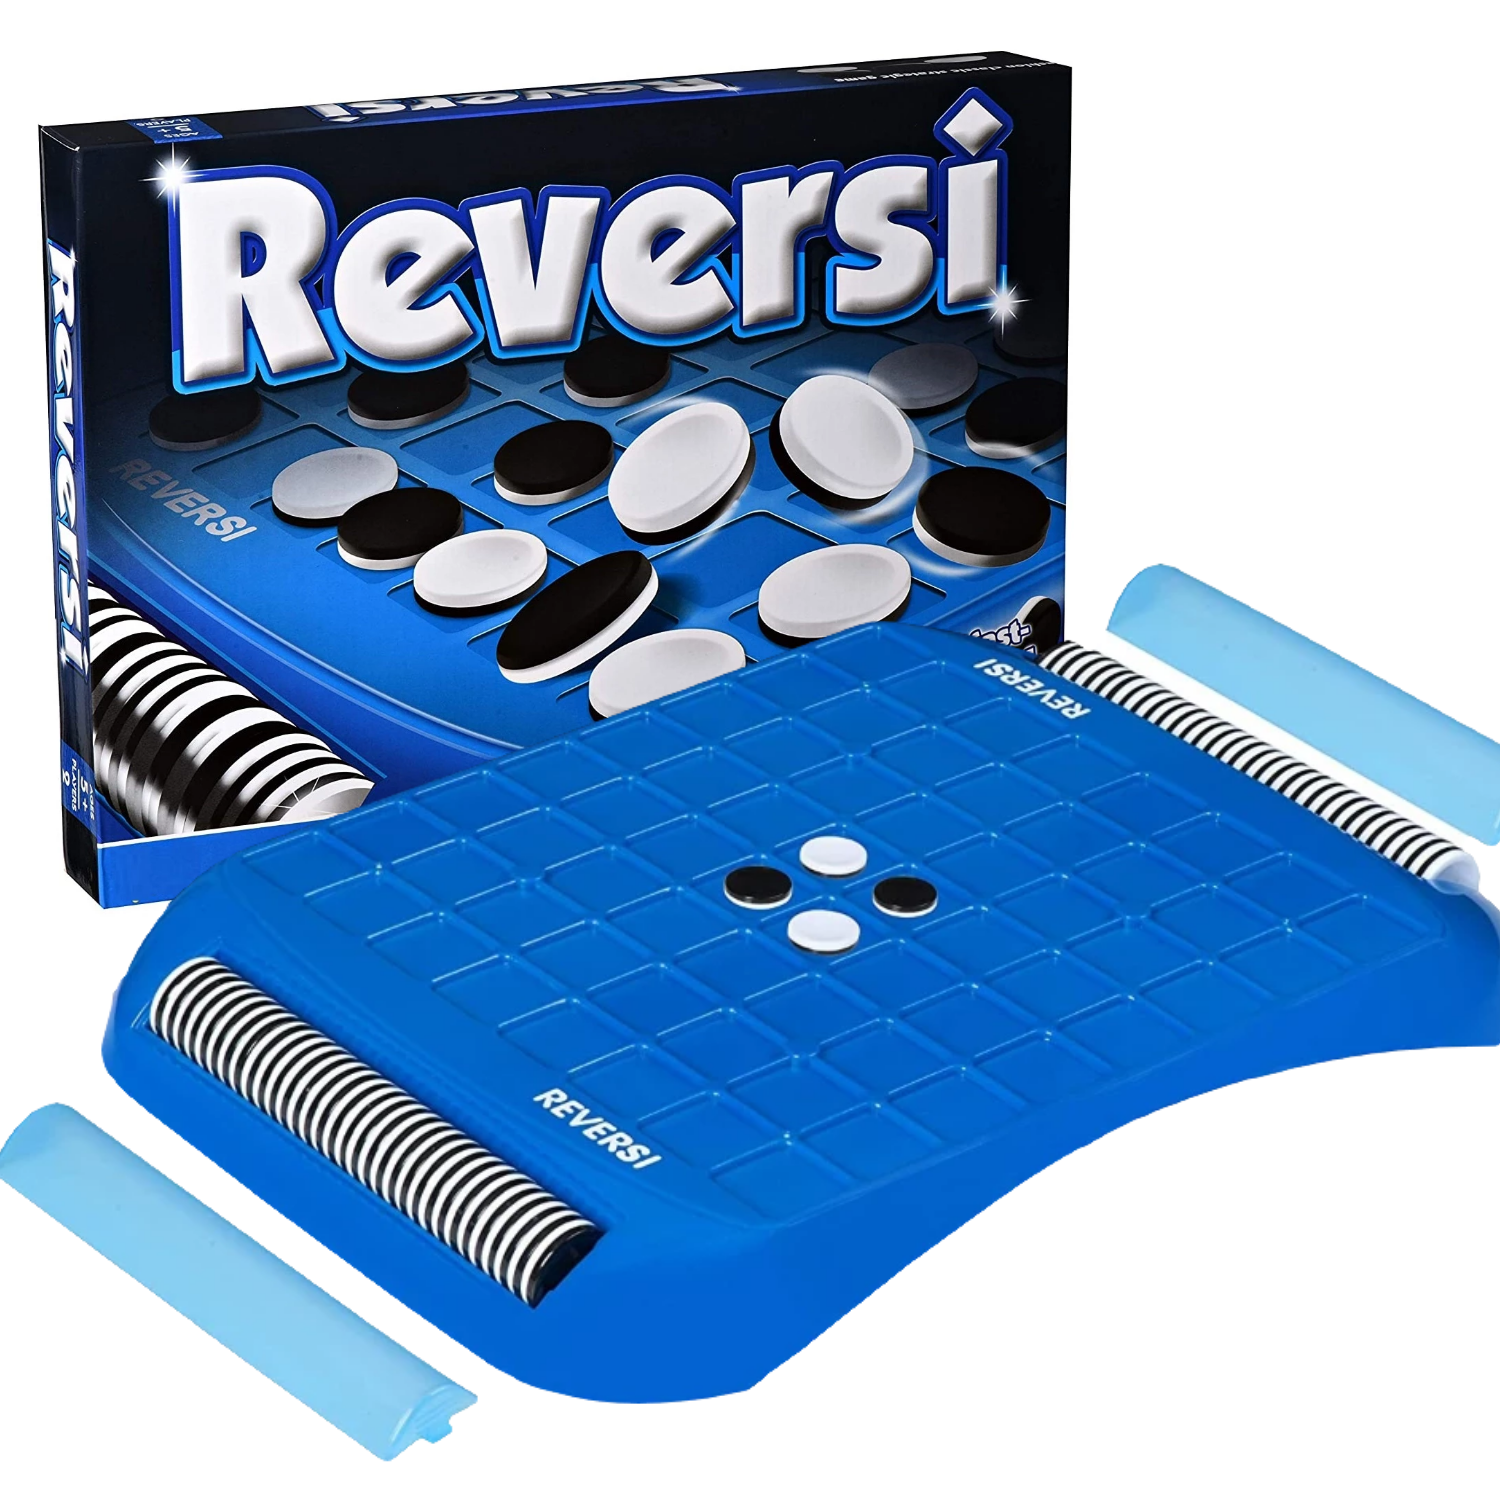 Othello Reversi Black & White Discs Board Game Logical Game STEAM Game For Kids Age 5+